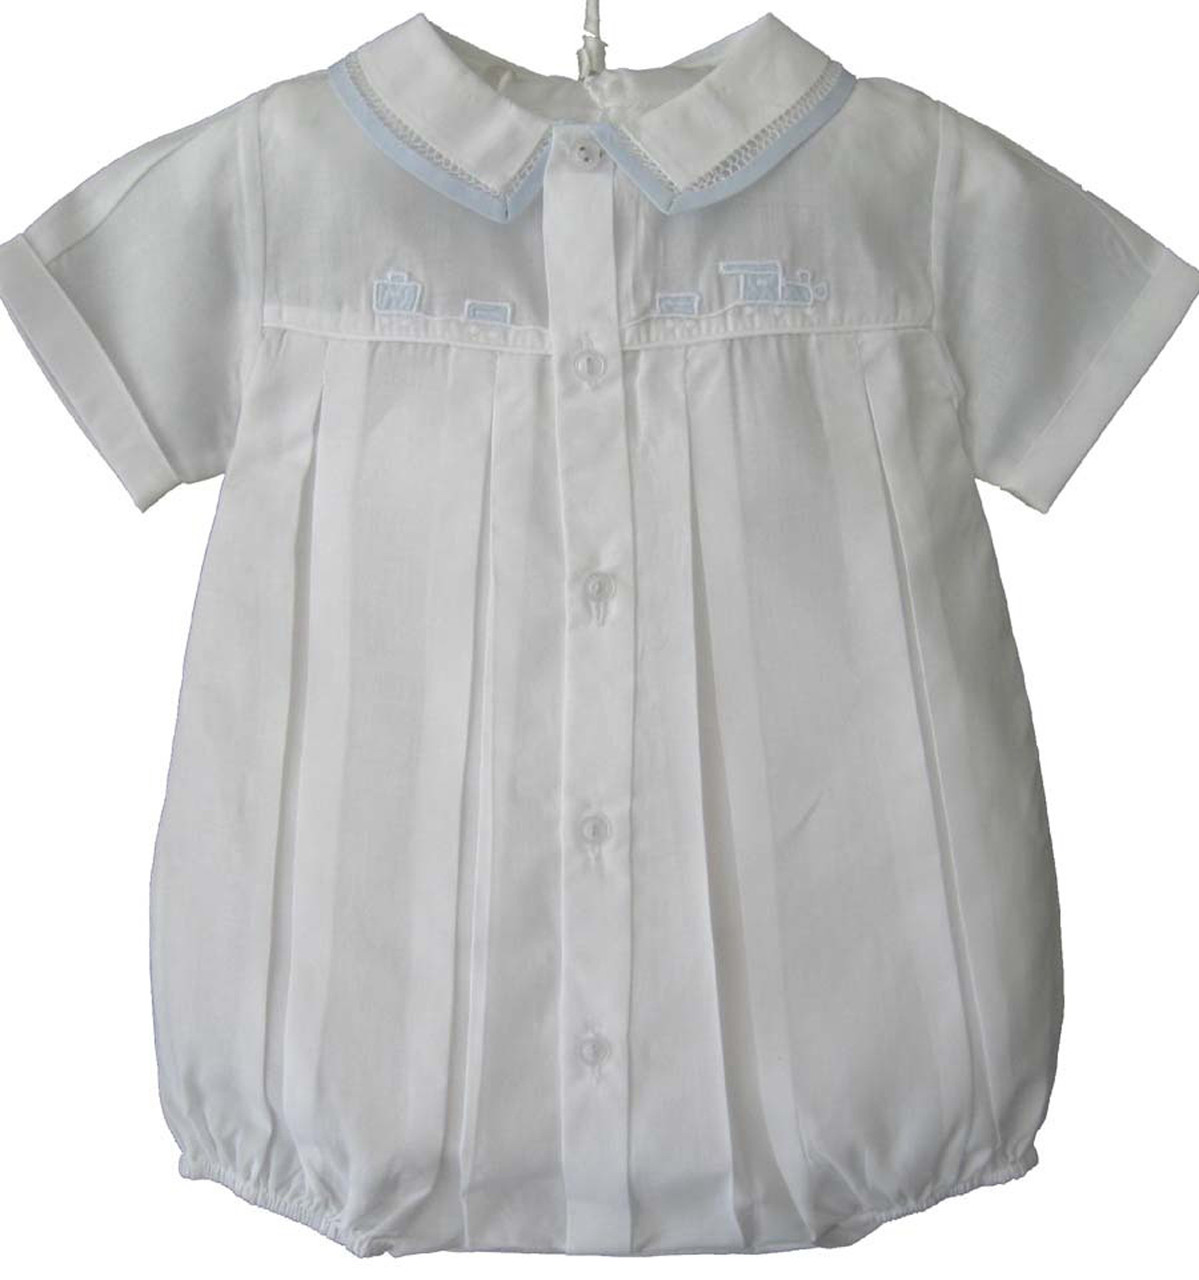 Feltman Brothers Infant Boys White Dressy Outfit with Blue ...